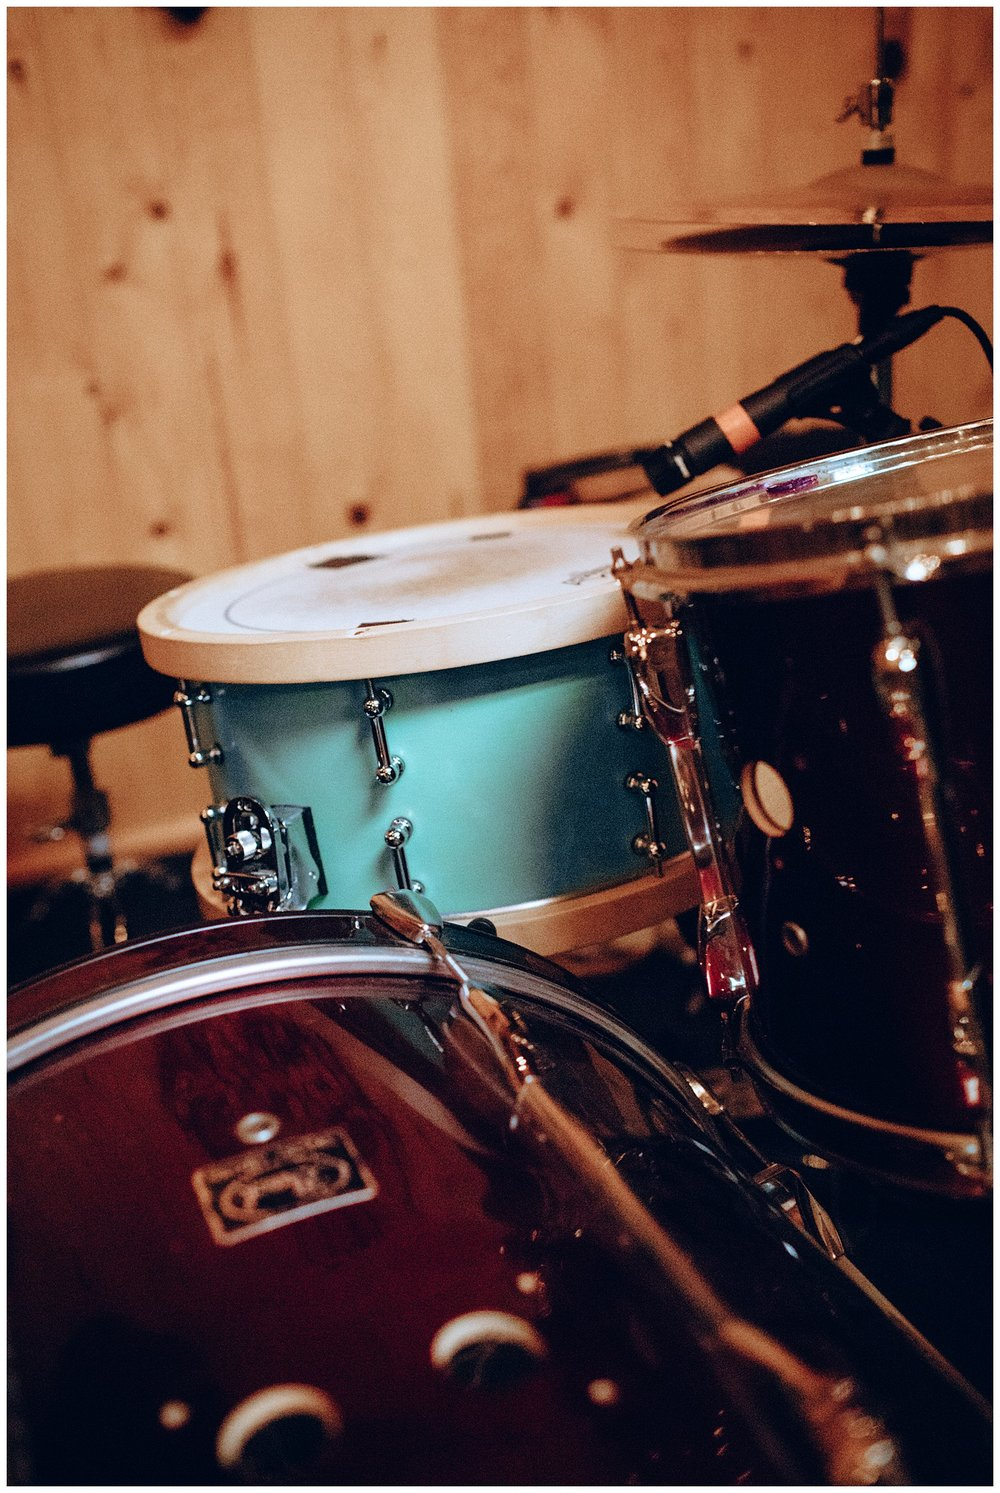 Chamonix Films - Seattle Music Videographer - Music Photography - drumset teal red